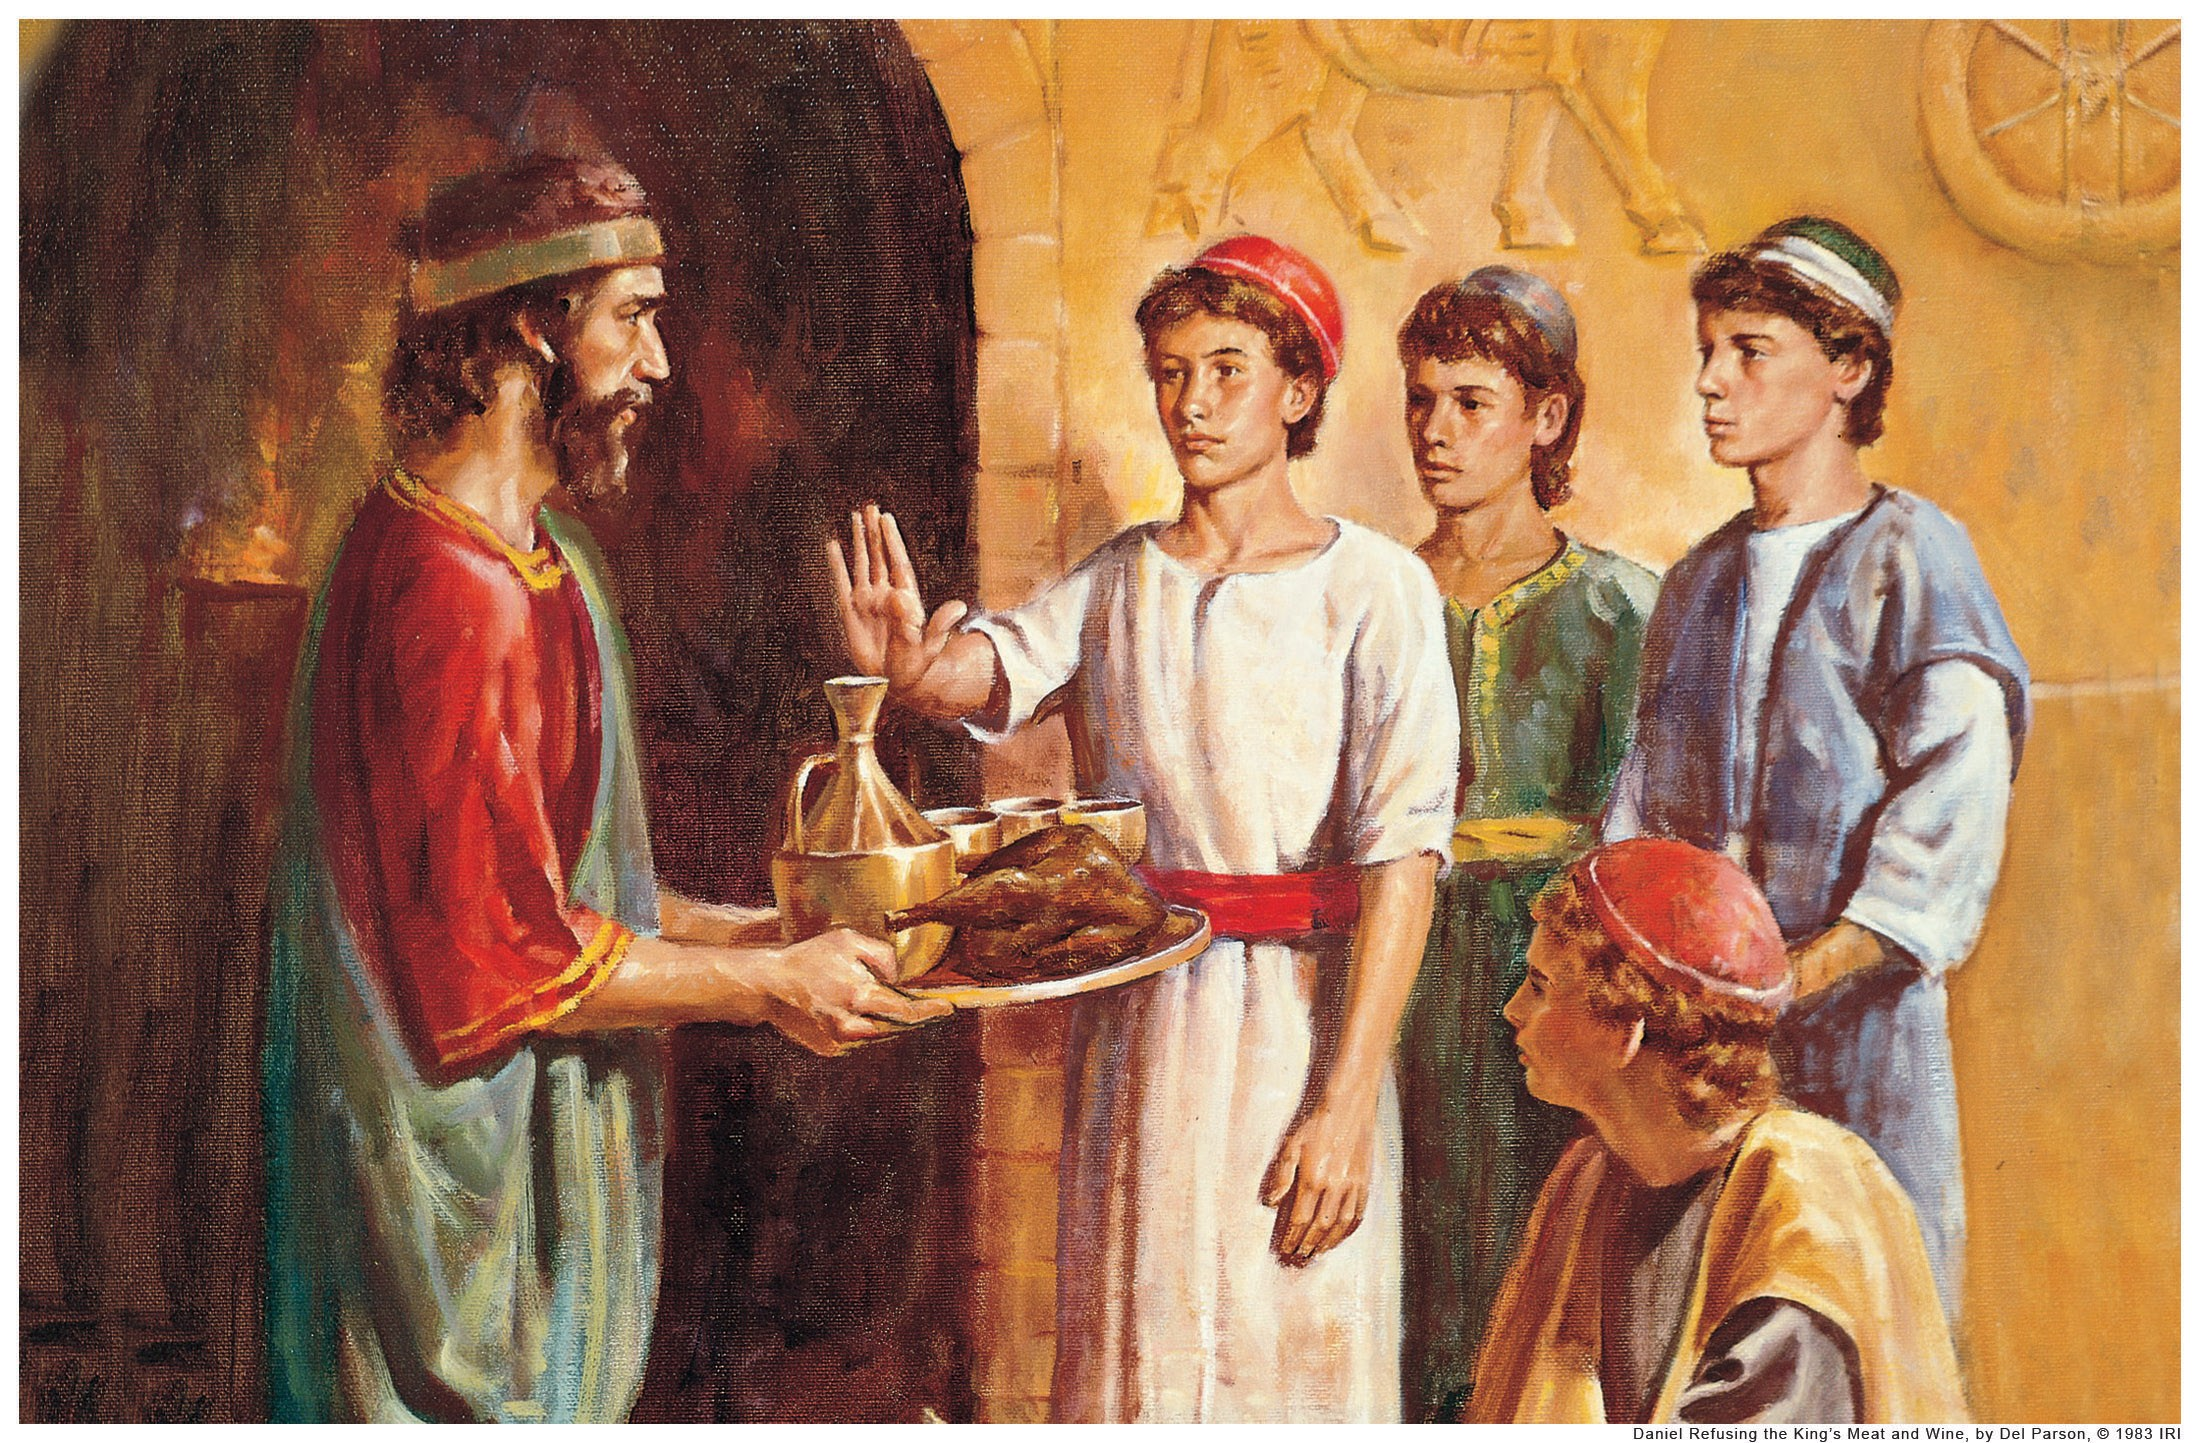 The Book of Daniel Pt 3